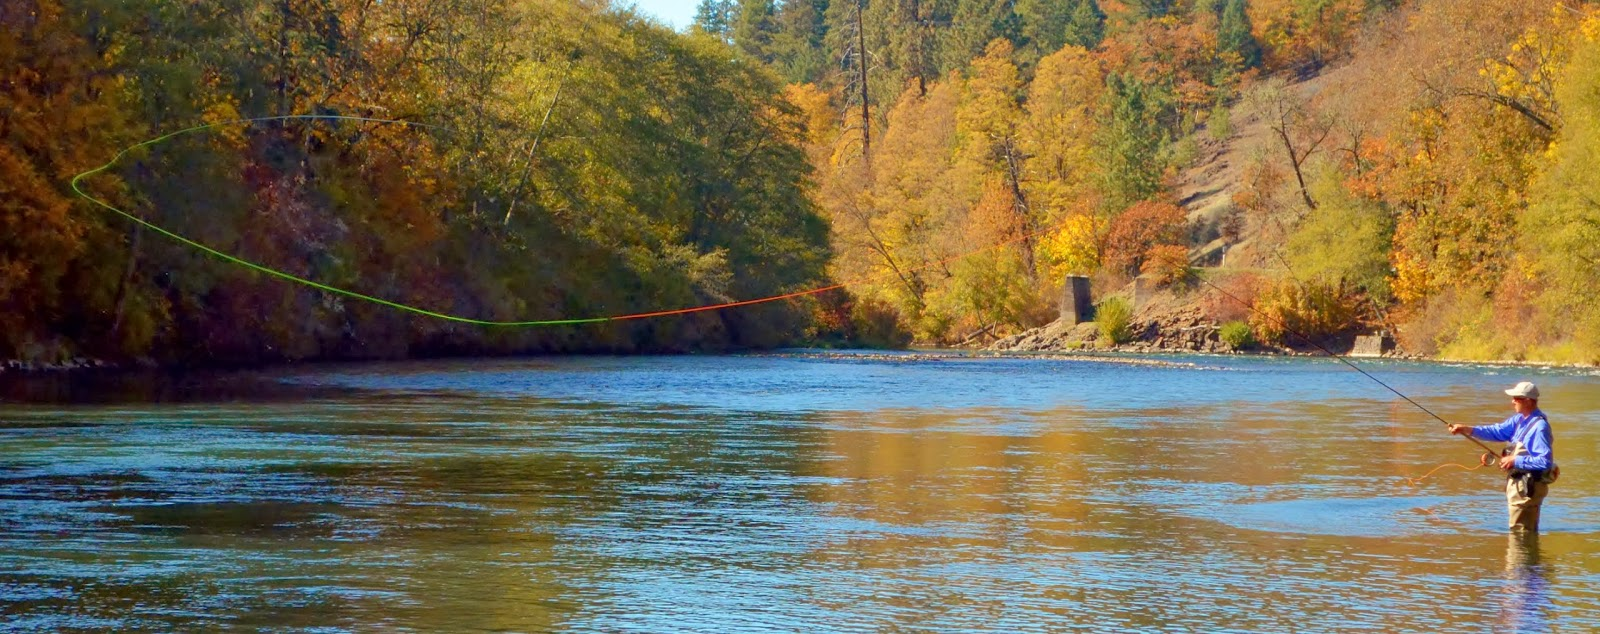 Rogue river and southern oregon fly fishing guide october for Rogue river oregon fishing